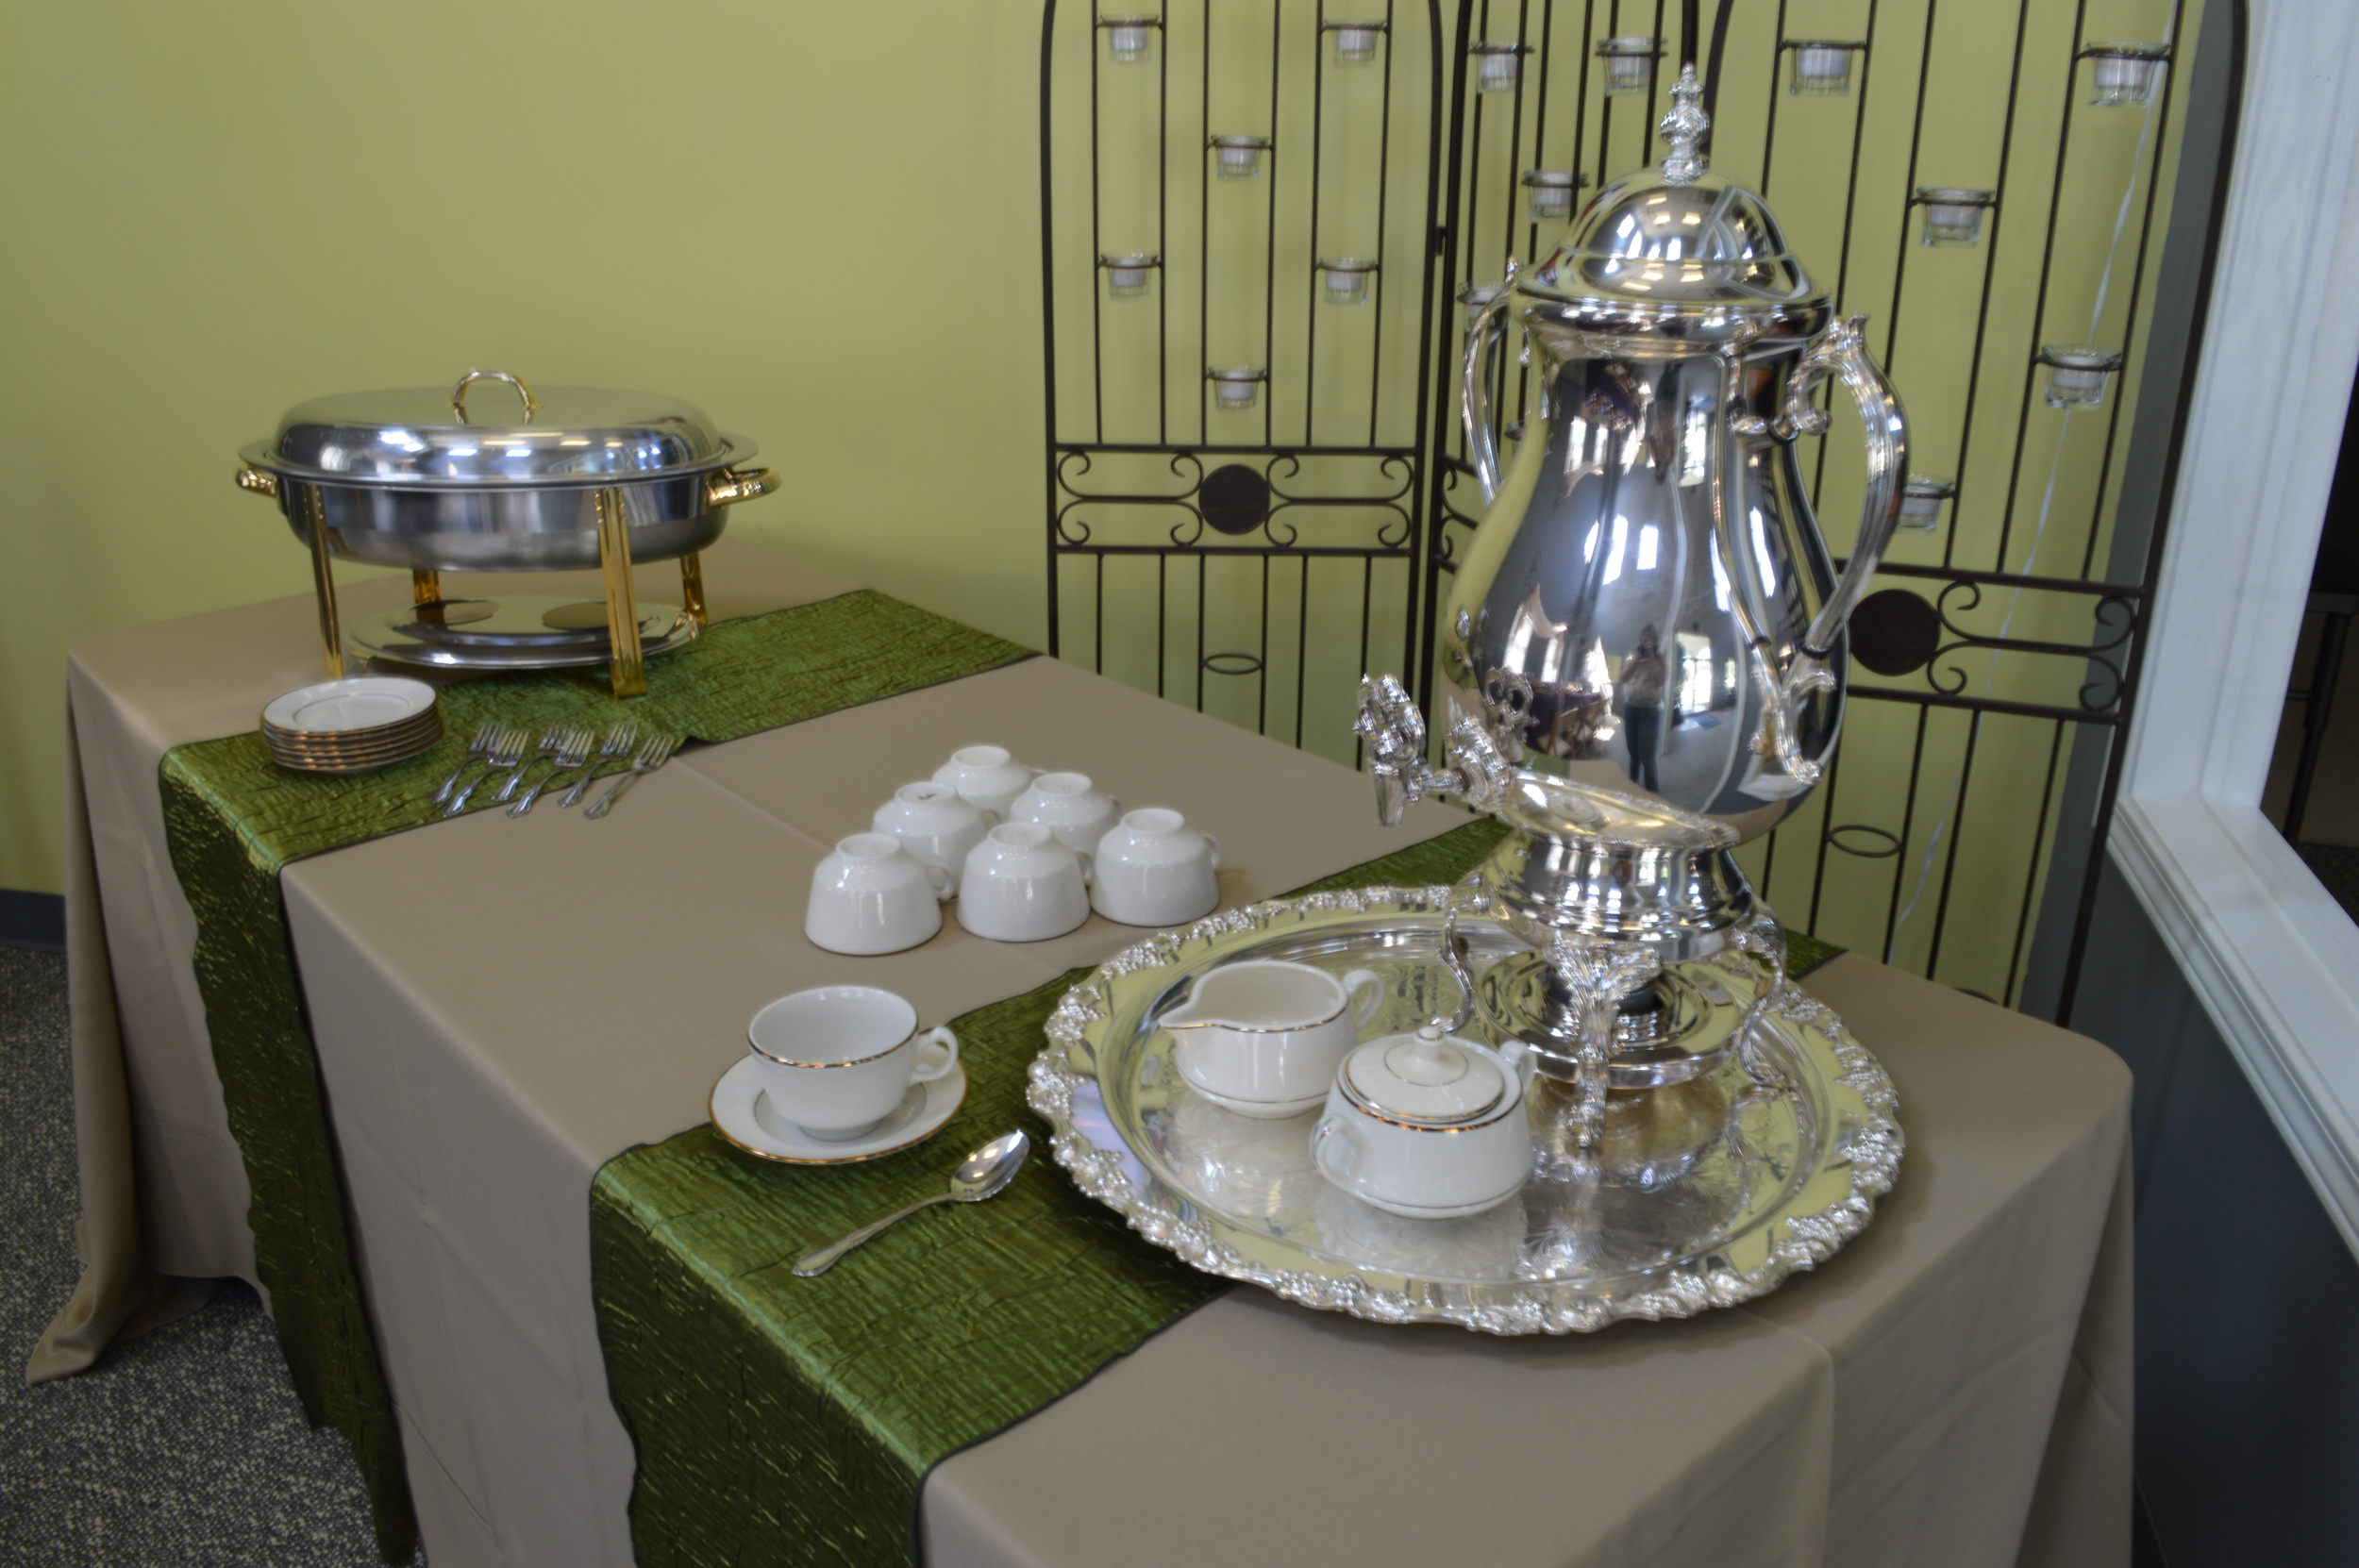 Displayed: Silver Coffee Urn, Gold/ Ivory Rimmed China, Silver & Gold Chafer, Khaki Linen, Sage Runner